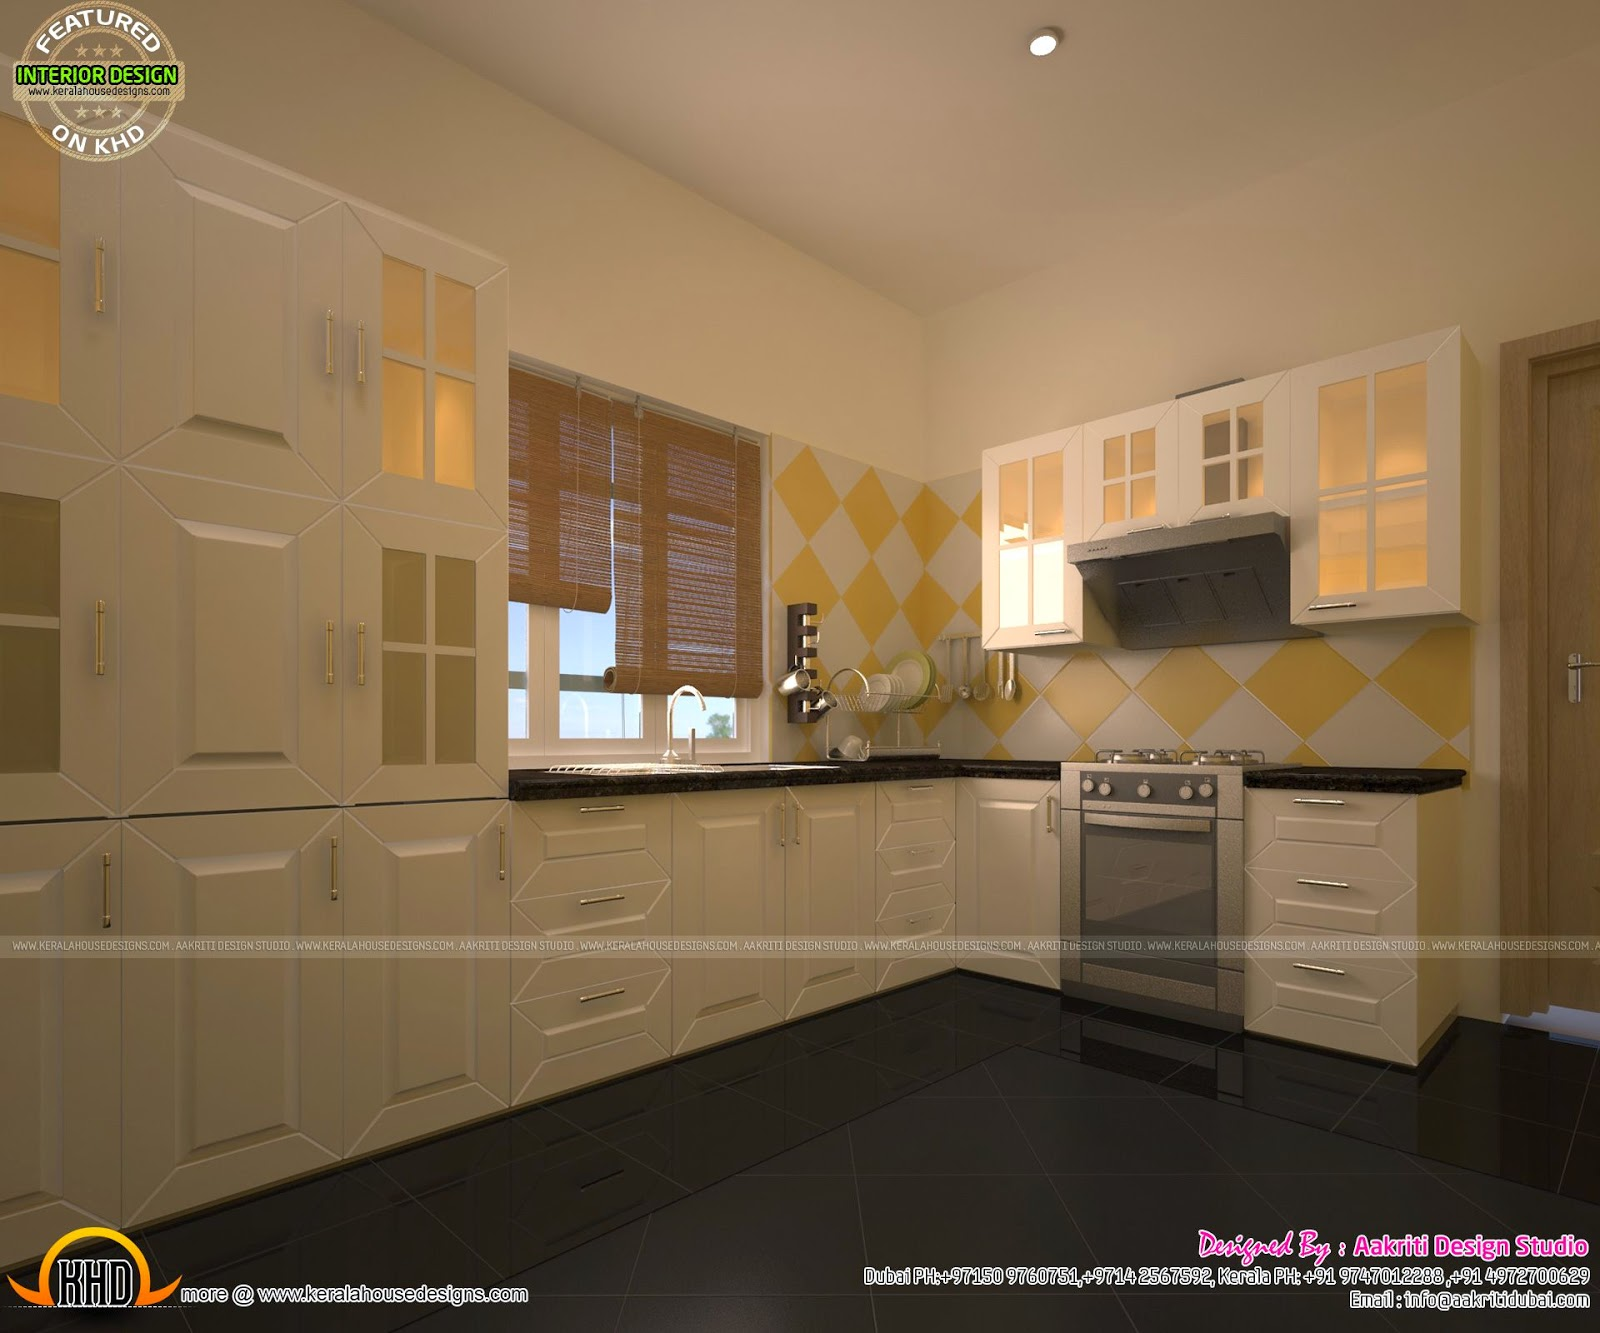 awesome interiors of living kitchen and bathroom kerala home